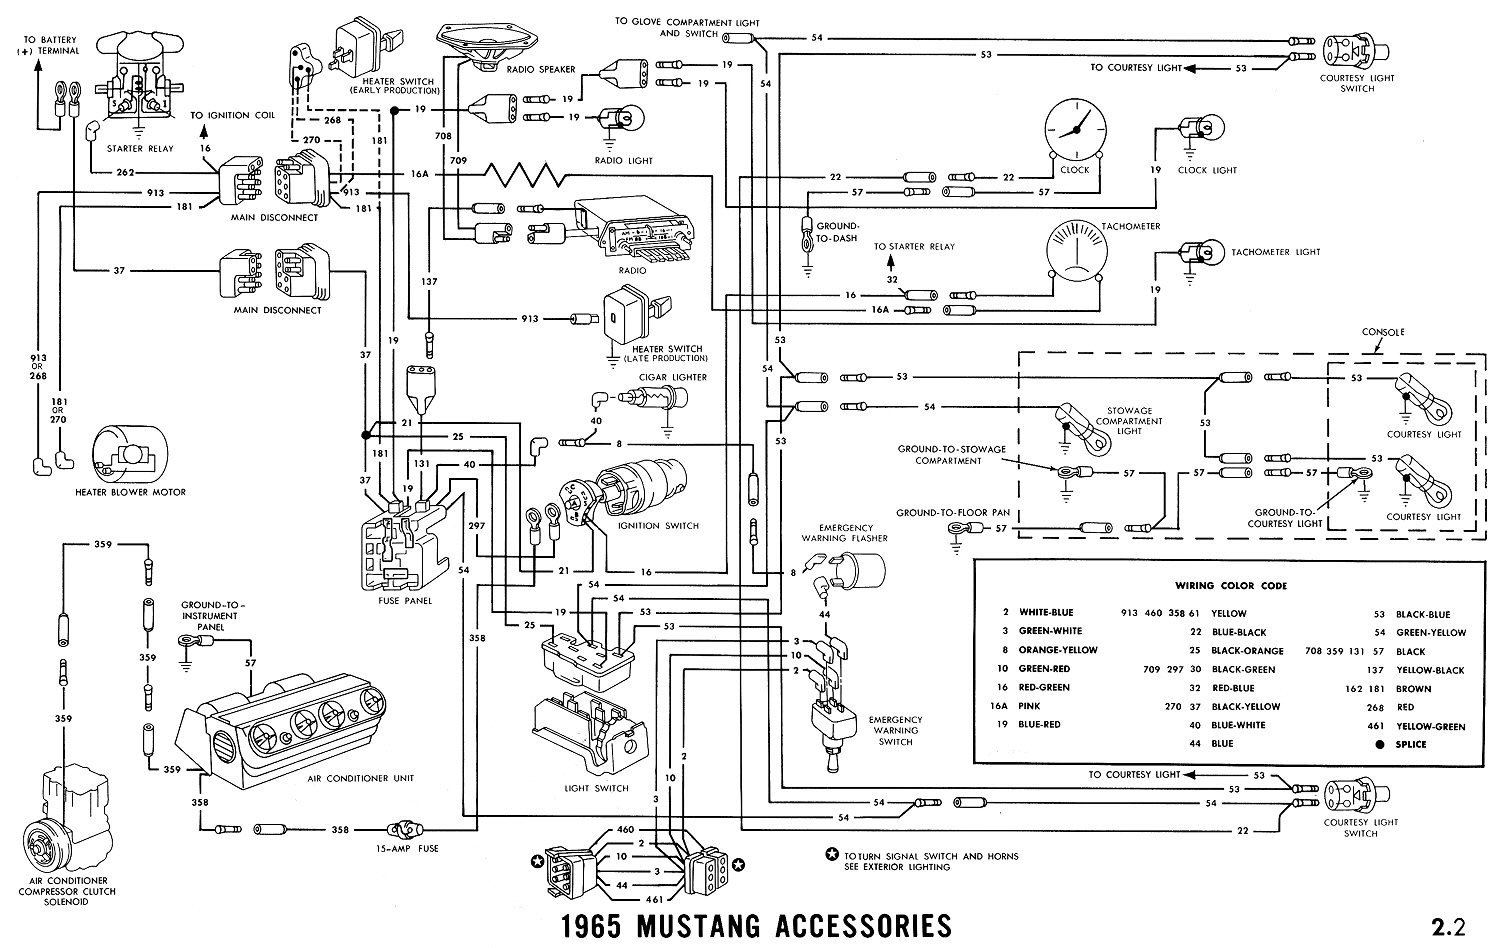 1965i 1967 mustang wiring diagram 67 mustang solenoid wiring diagram 1965 mustang turn signal wiring diagram at bakdesigns.co